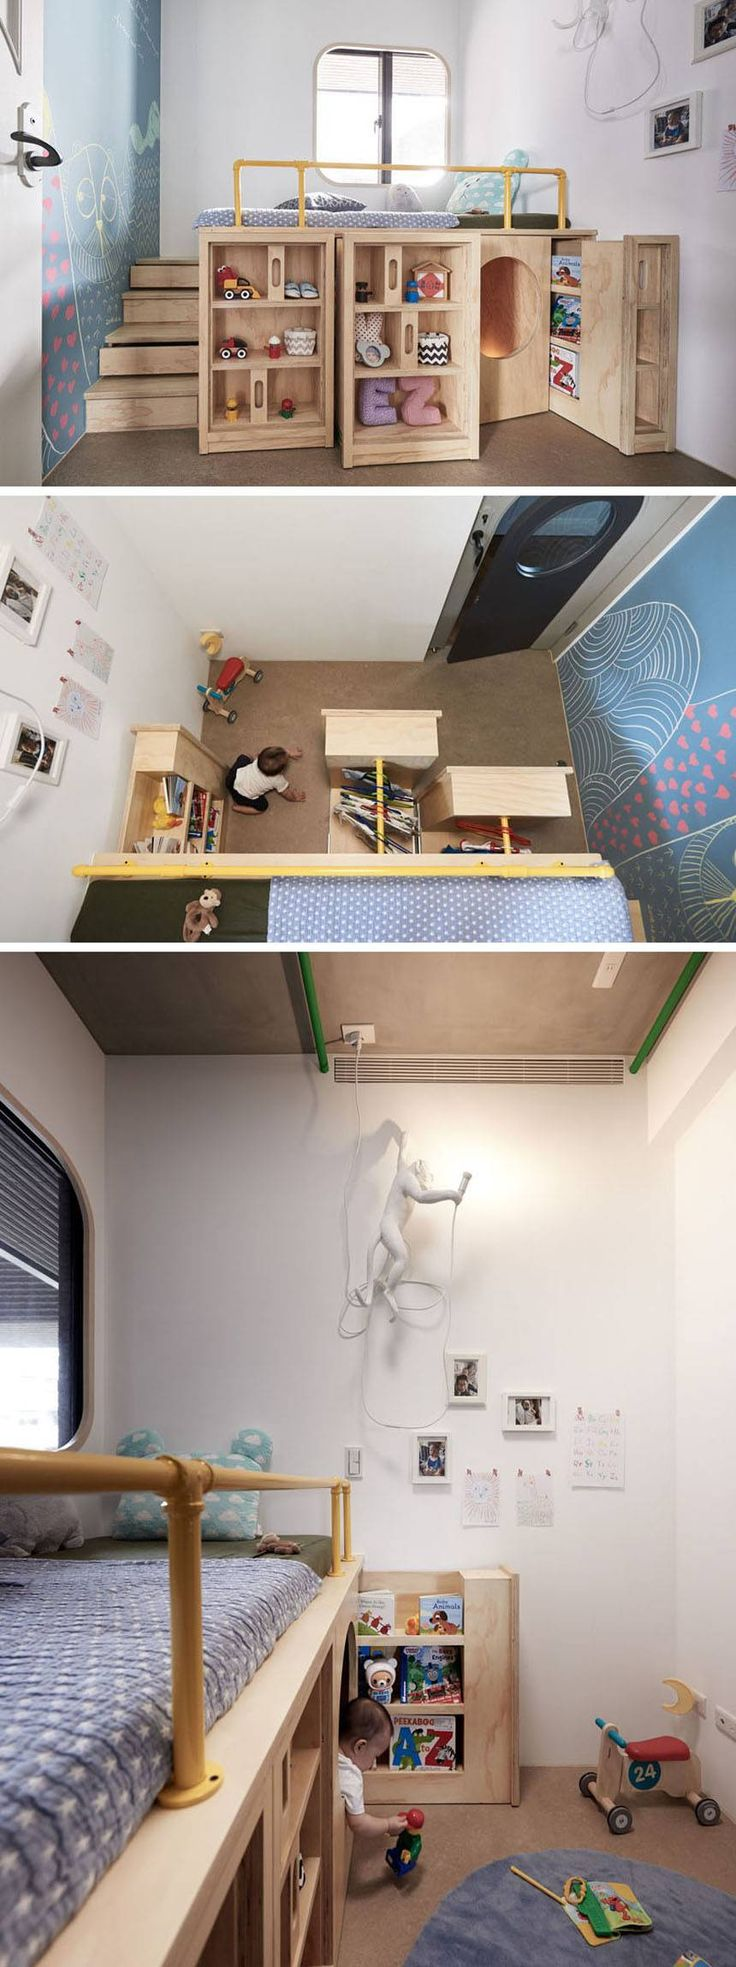 Space-saving design makes one child's bedroom a fun hideaway